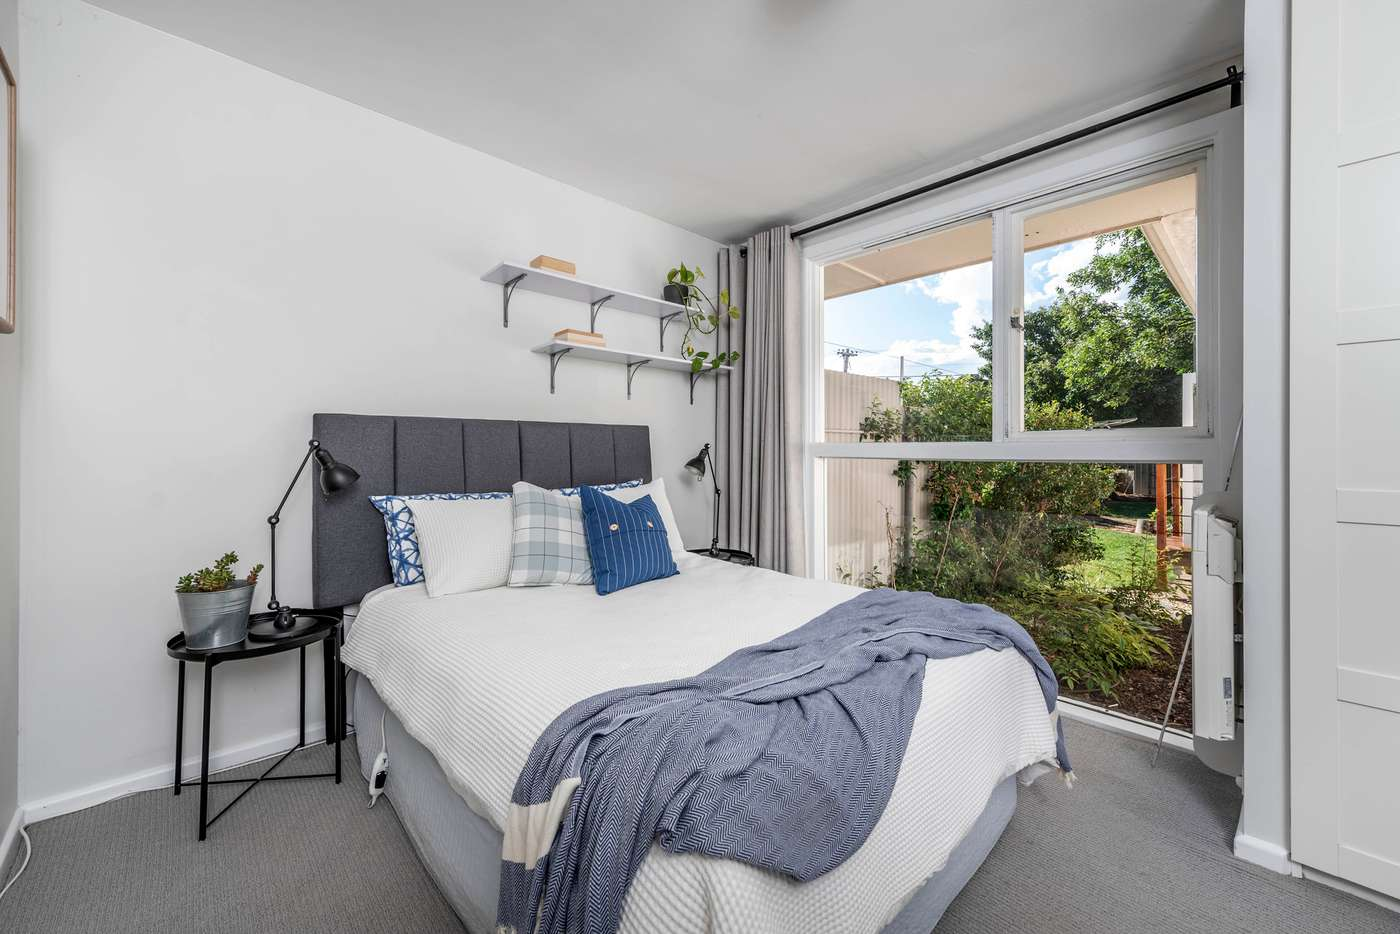 Sixth view of Homely house listing, 176 Goyder Street, Narrabundah ACT 2604